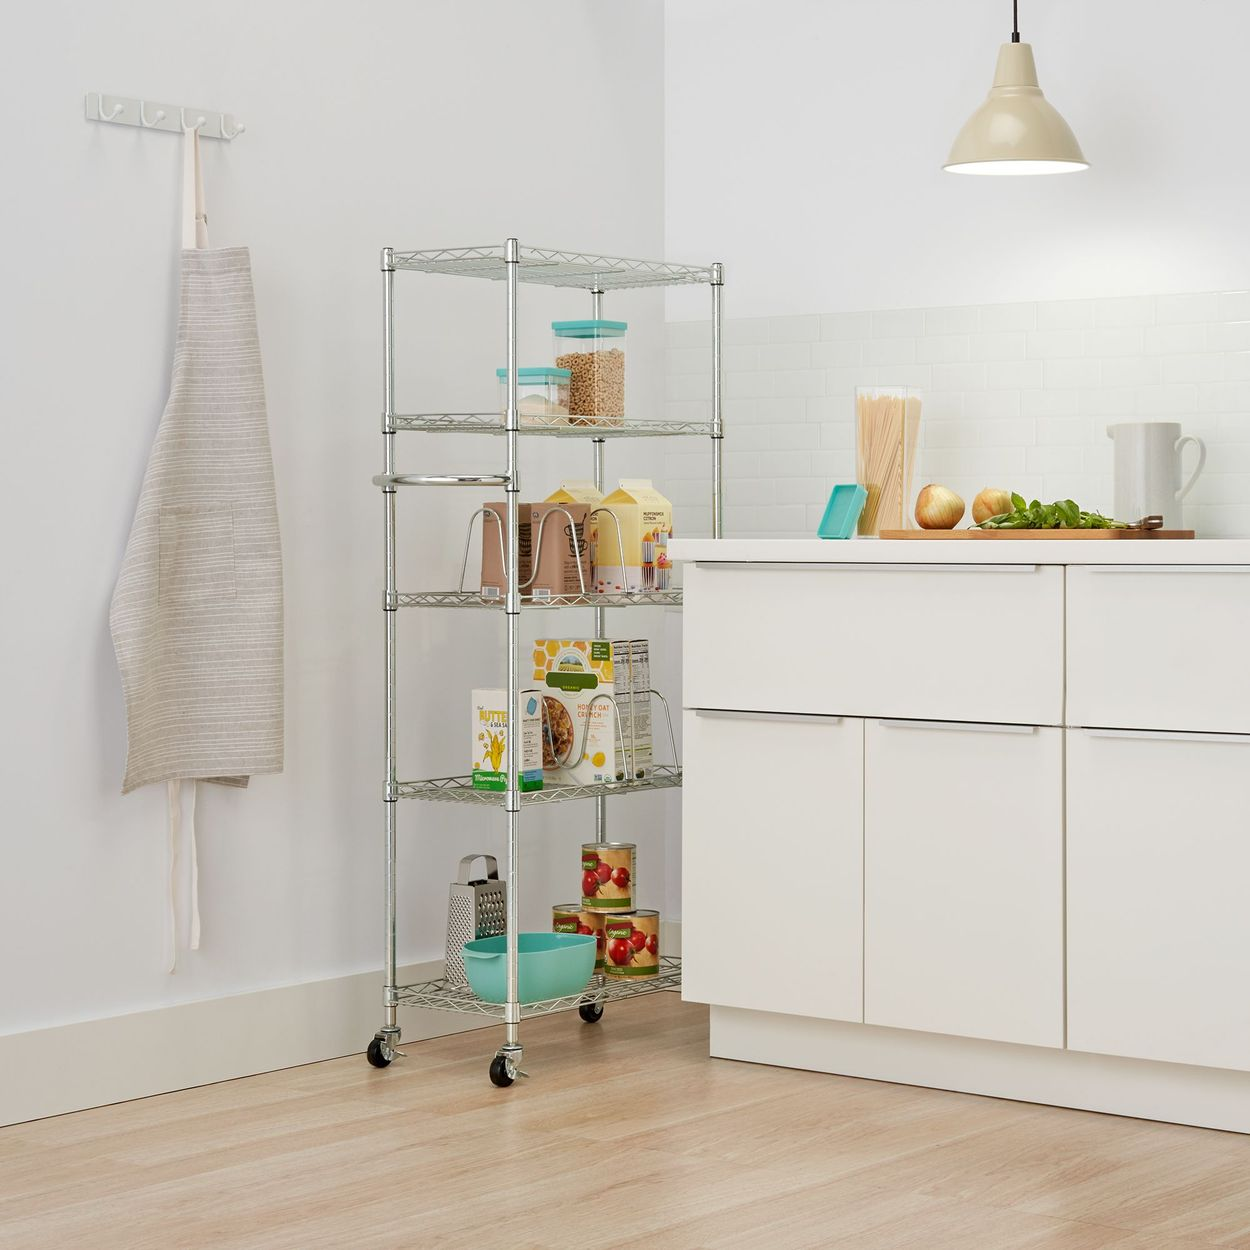 Pantry rack used in kitchen